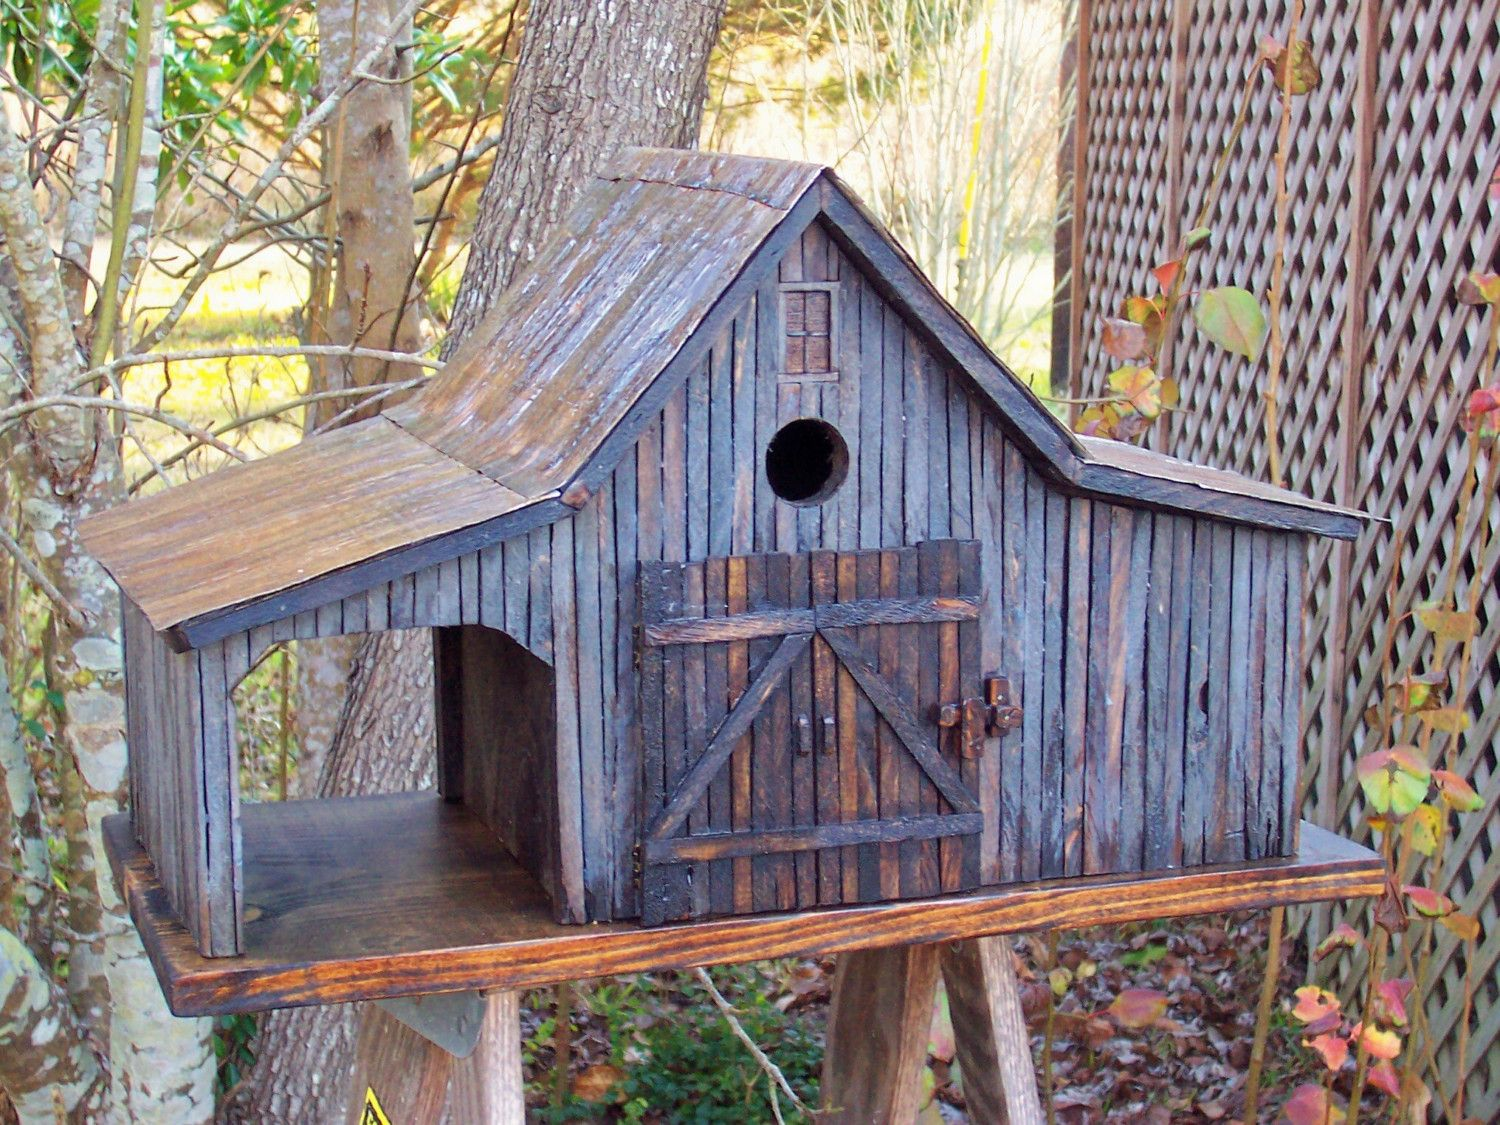 creative birdhouse ideas birdhouse decorating ideas birdhouse design ideas easy birdhouse ideas birdhouse post ideas homemade birdhouse ideas birdhouse roof ... & 30+ Birdhouse Ideas For Your Precious Garden | Pinterest | Country ...